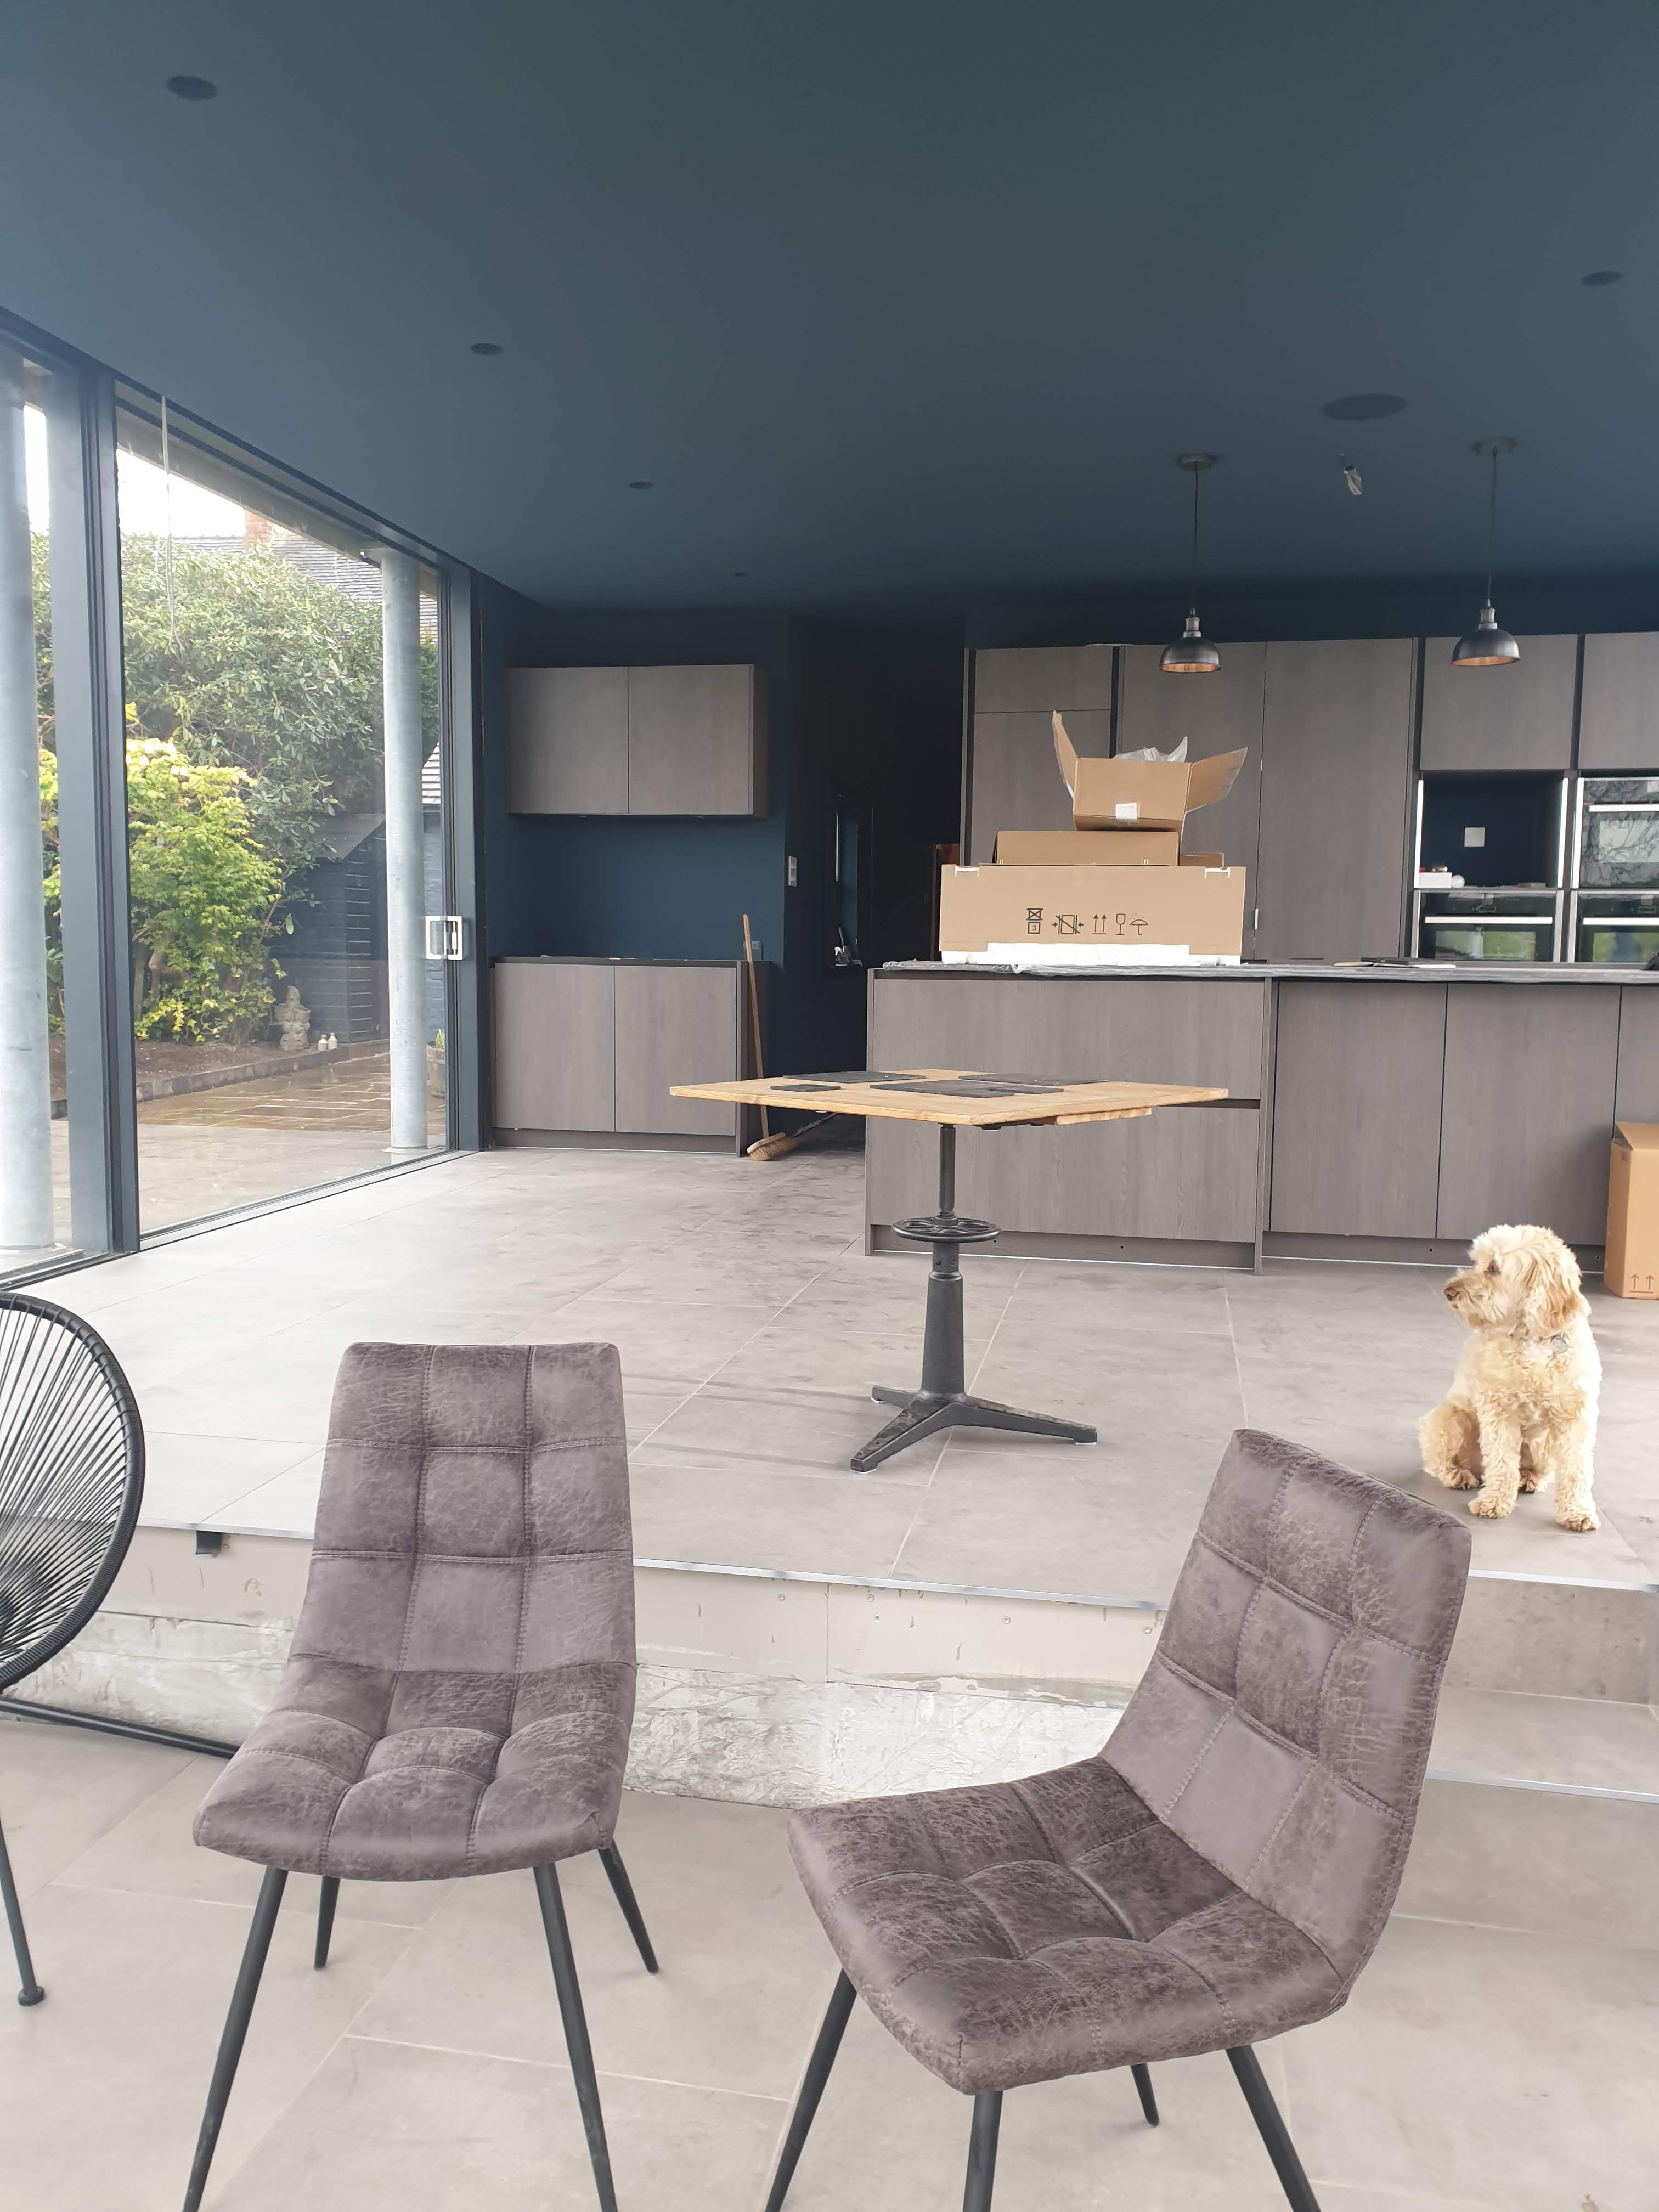 Croft Architecture Design a Grade II Listed Minimal Extension Mobalpa Kitchen and Cute Dog